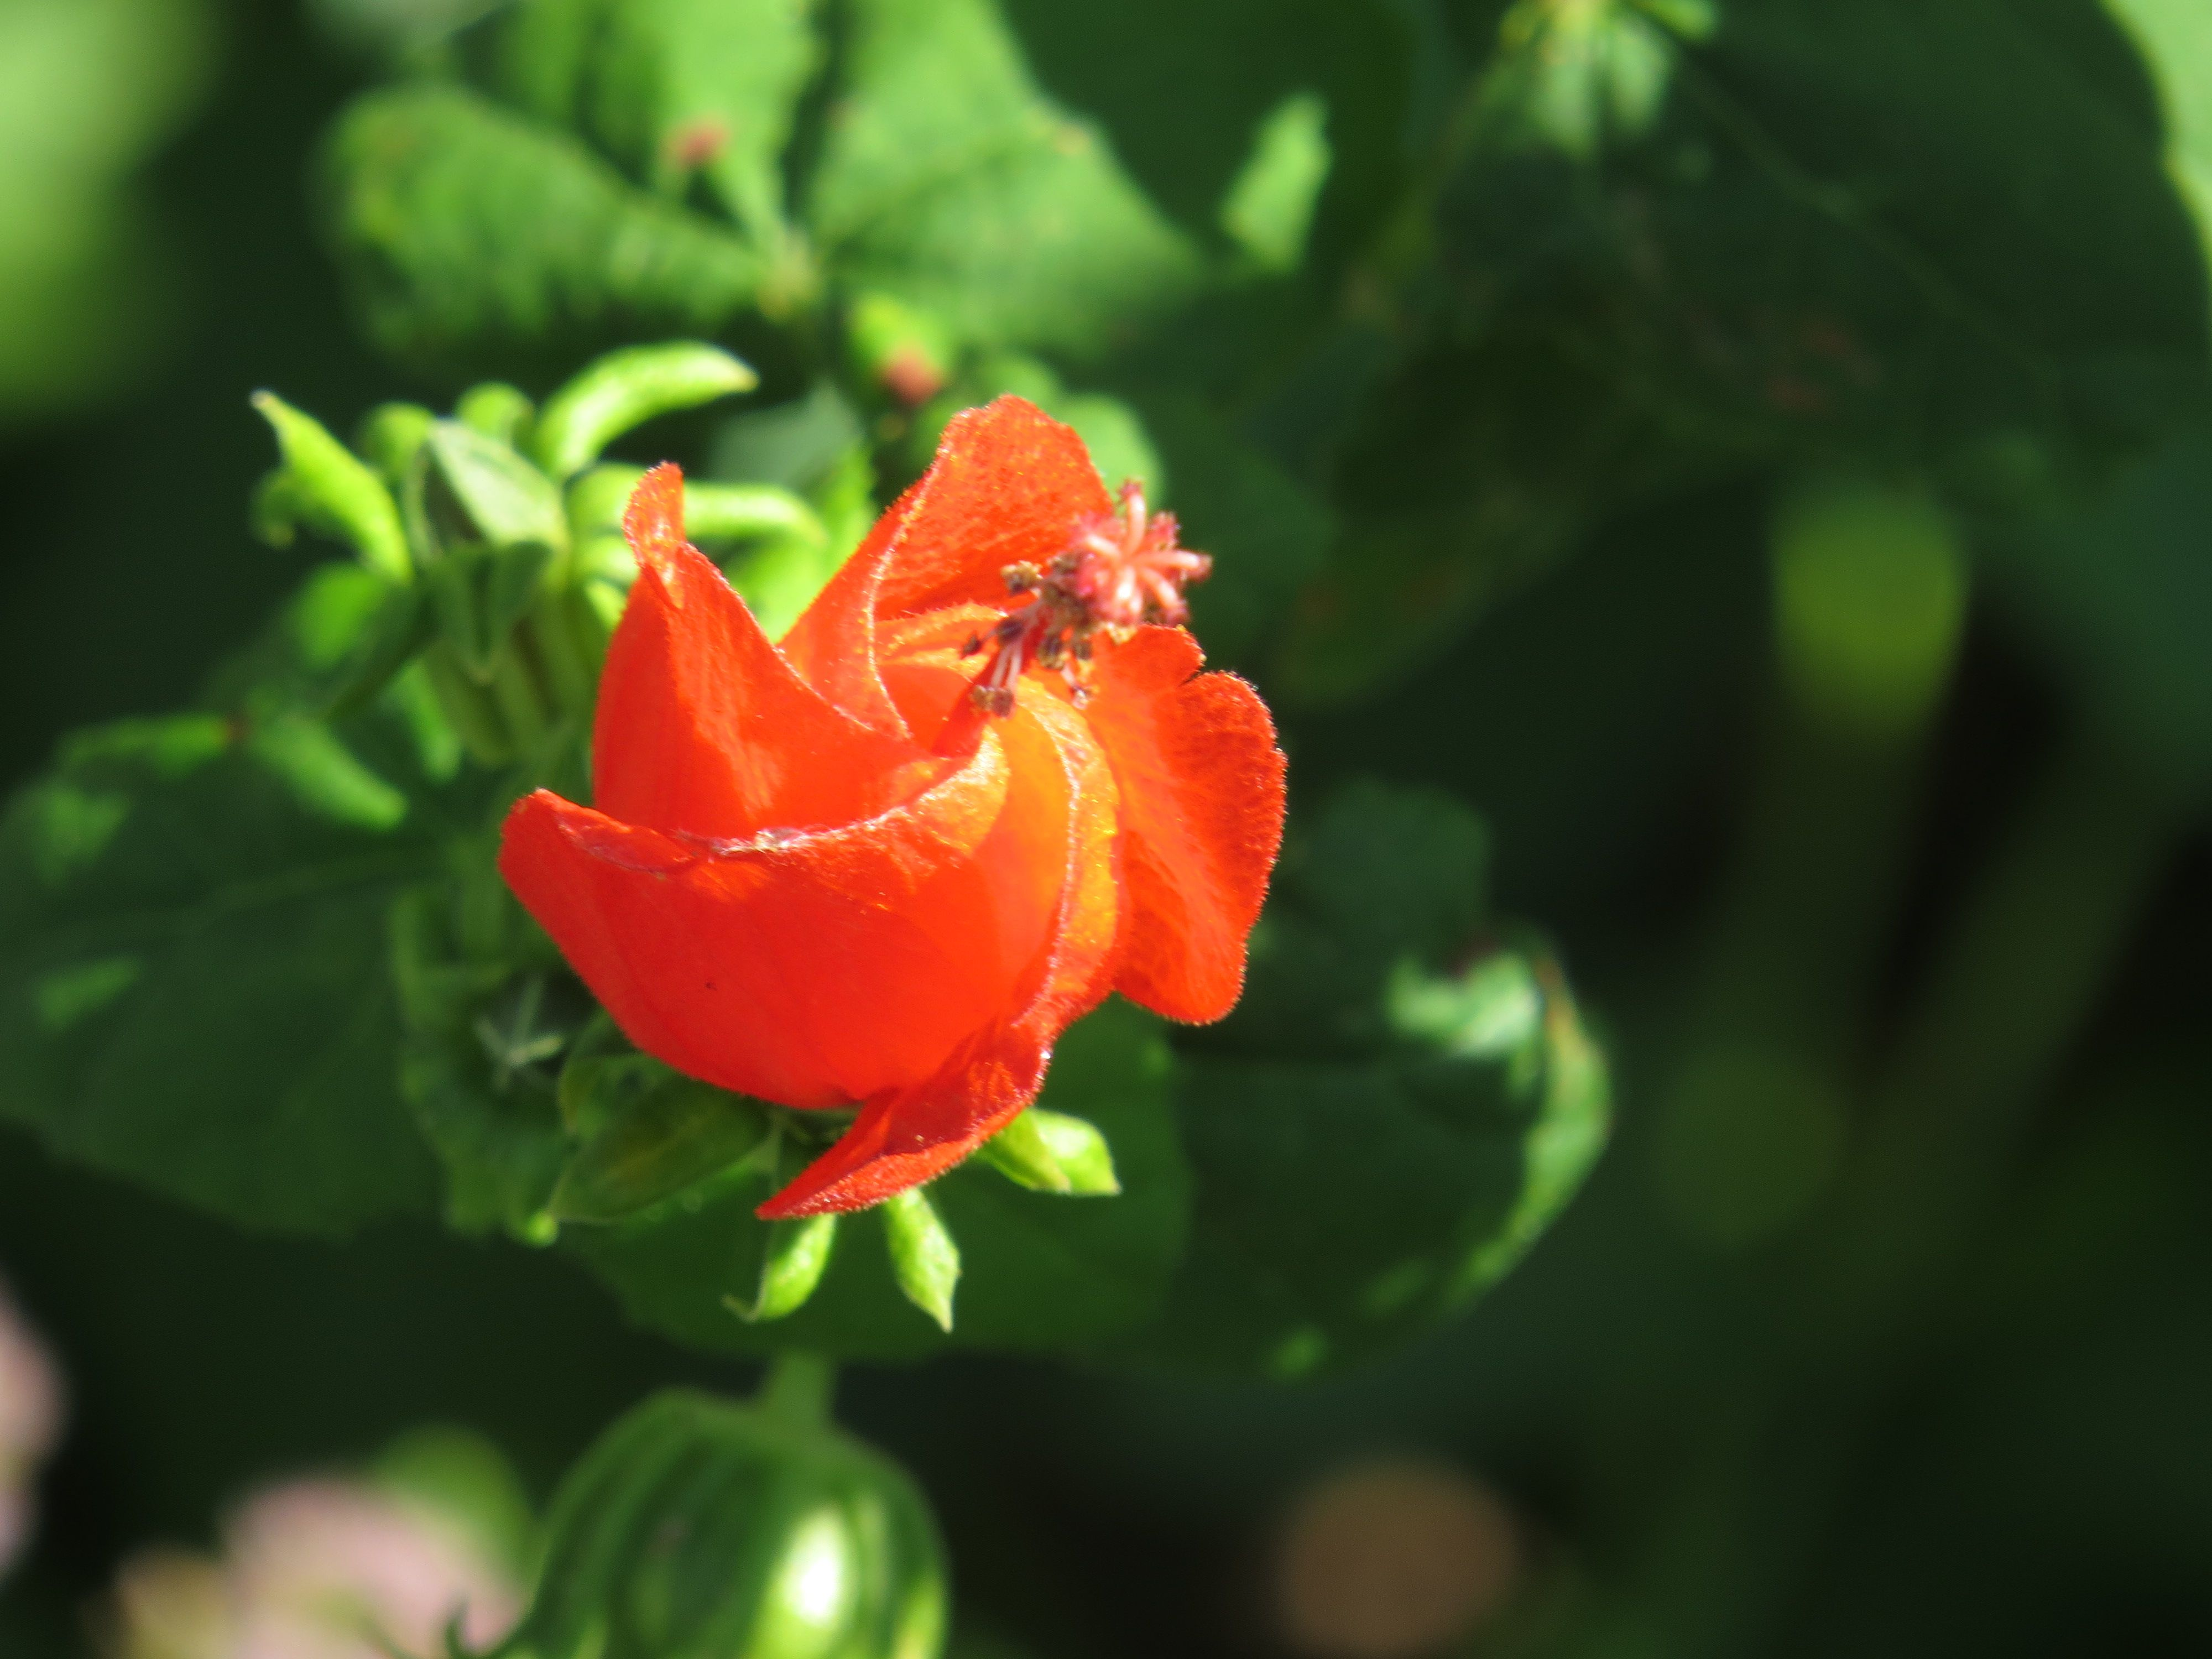 tiny red flower, playing with the macro on the camera